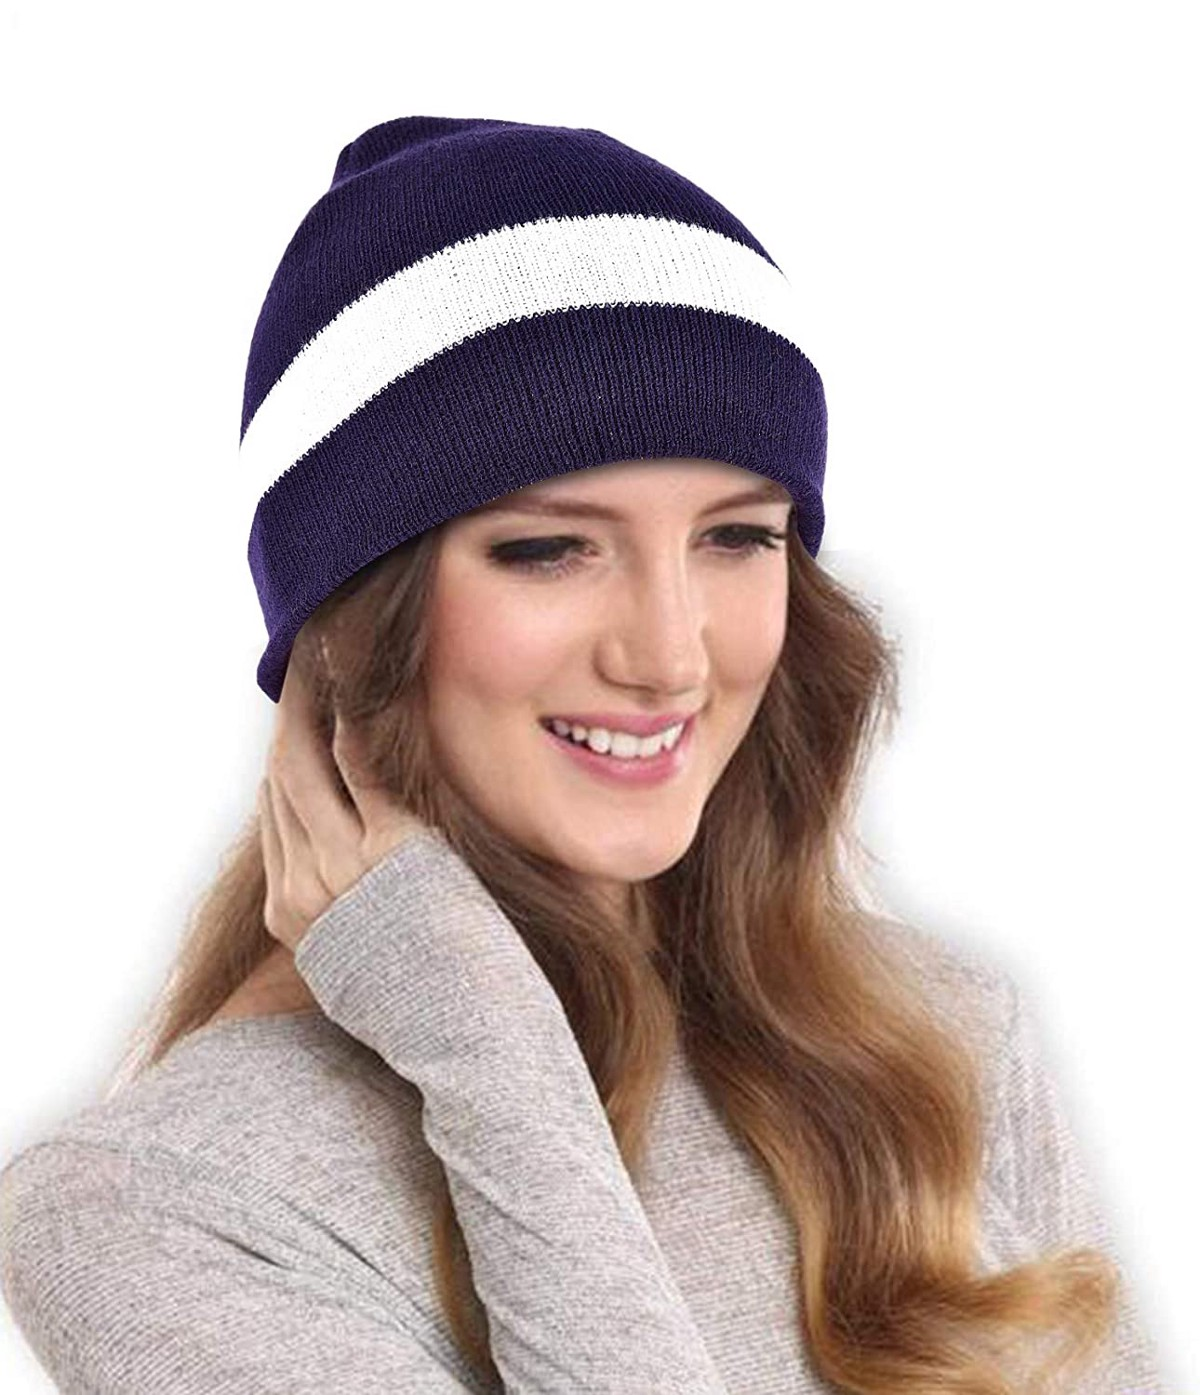 Drunken Women S Winter Cap Striped Warm Woollen Beanie Cap Blue Free Size Habibkamal Medium